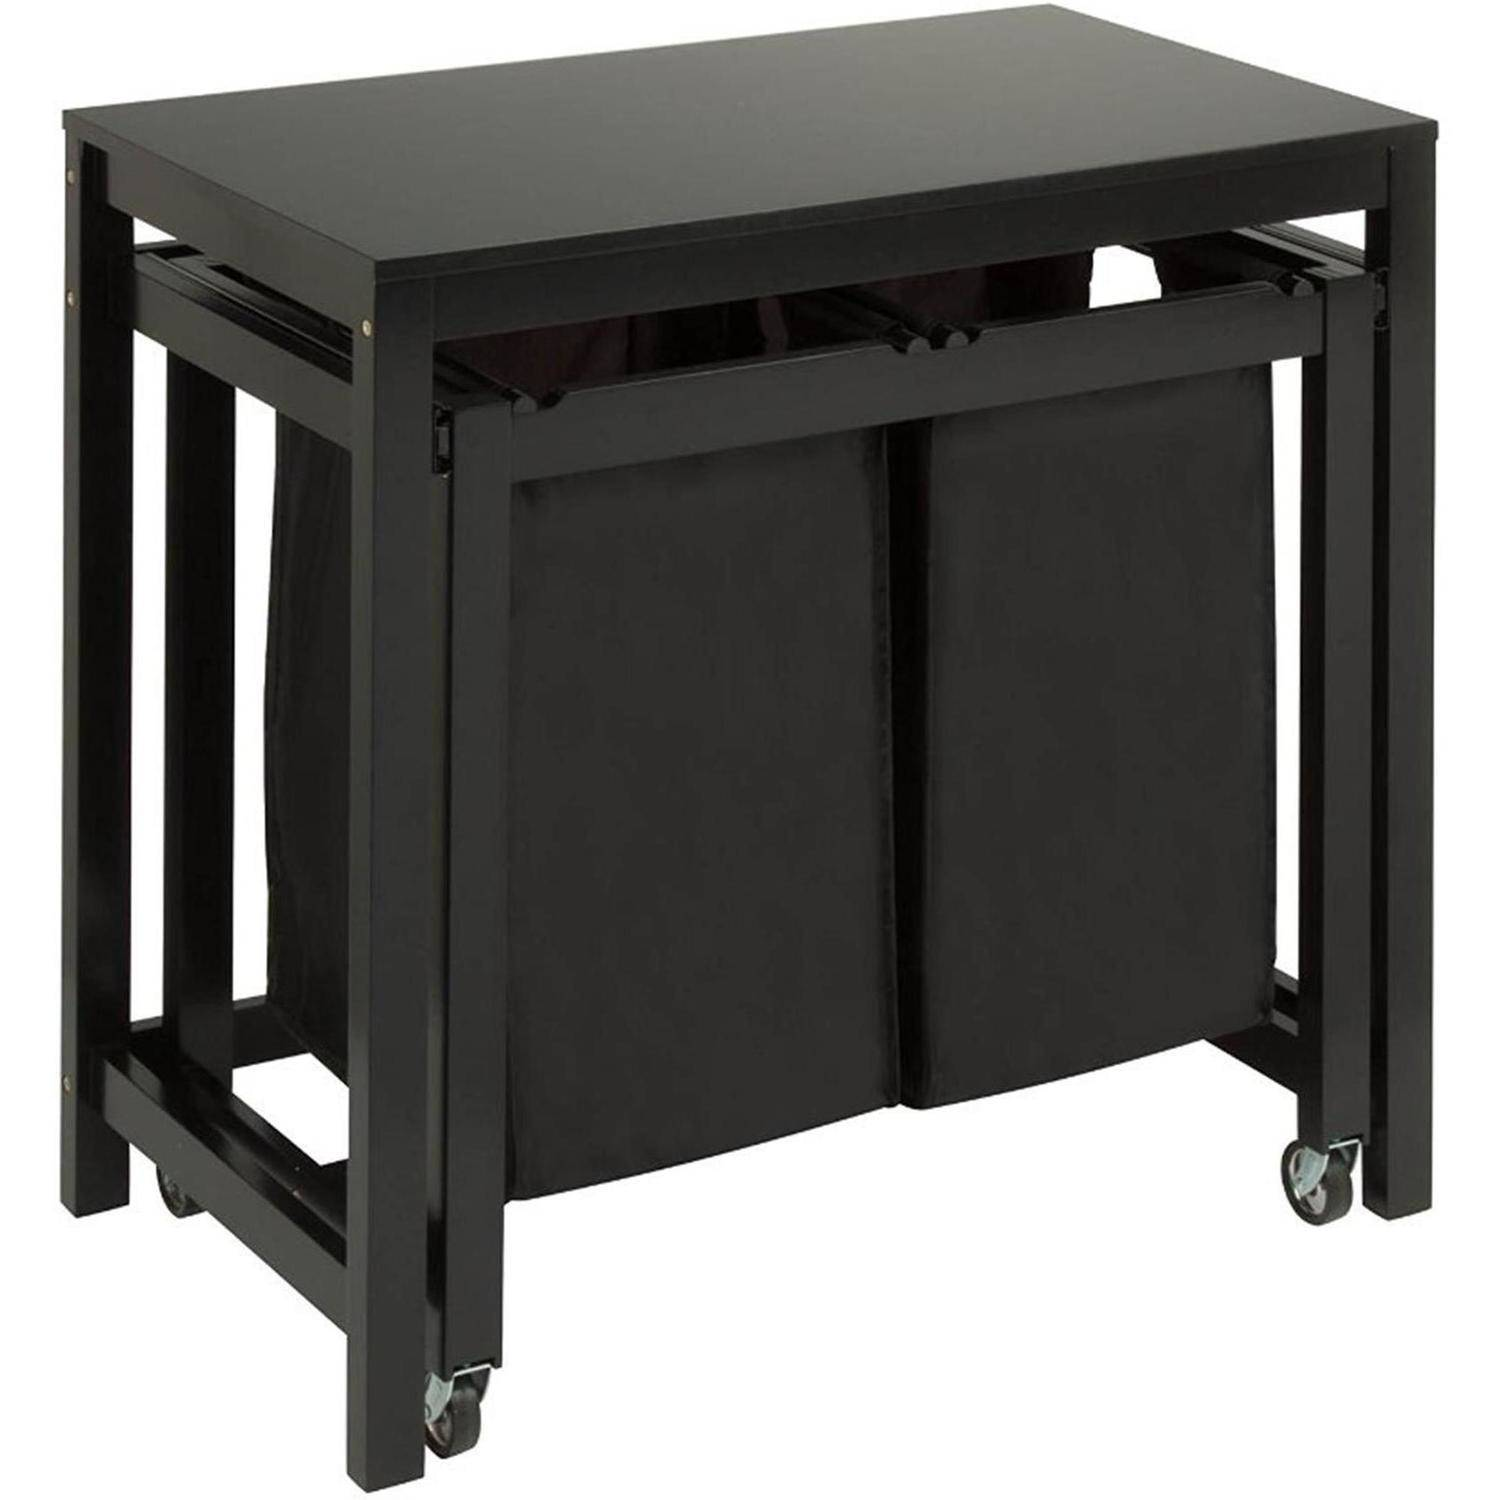 Honey Can Do Wood Laundry Sorter and Folding Table with 2 Bags, Black